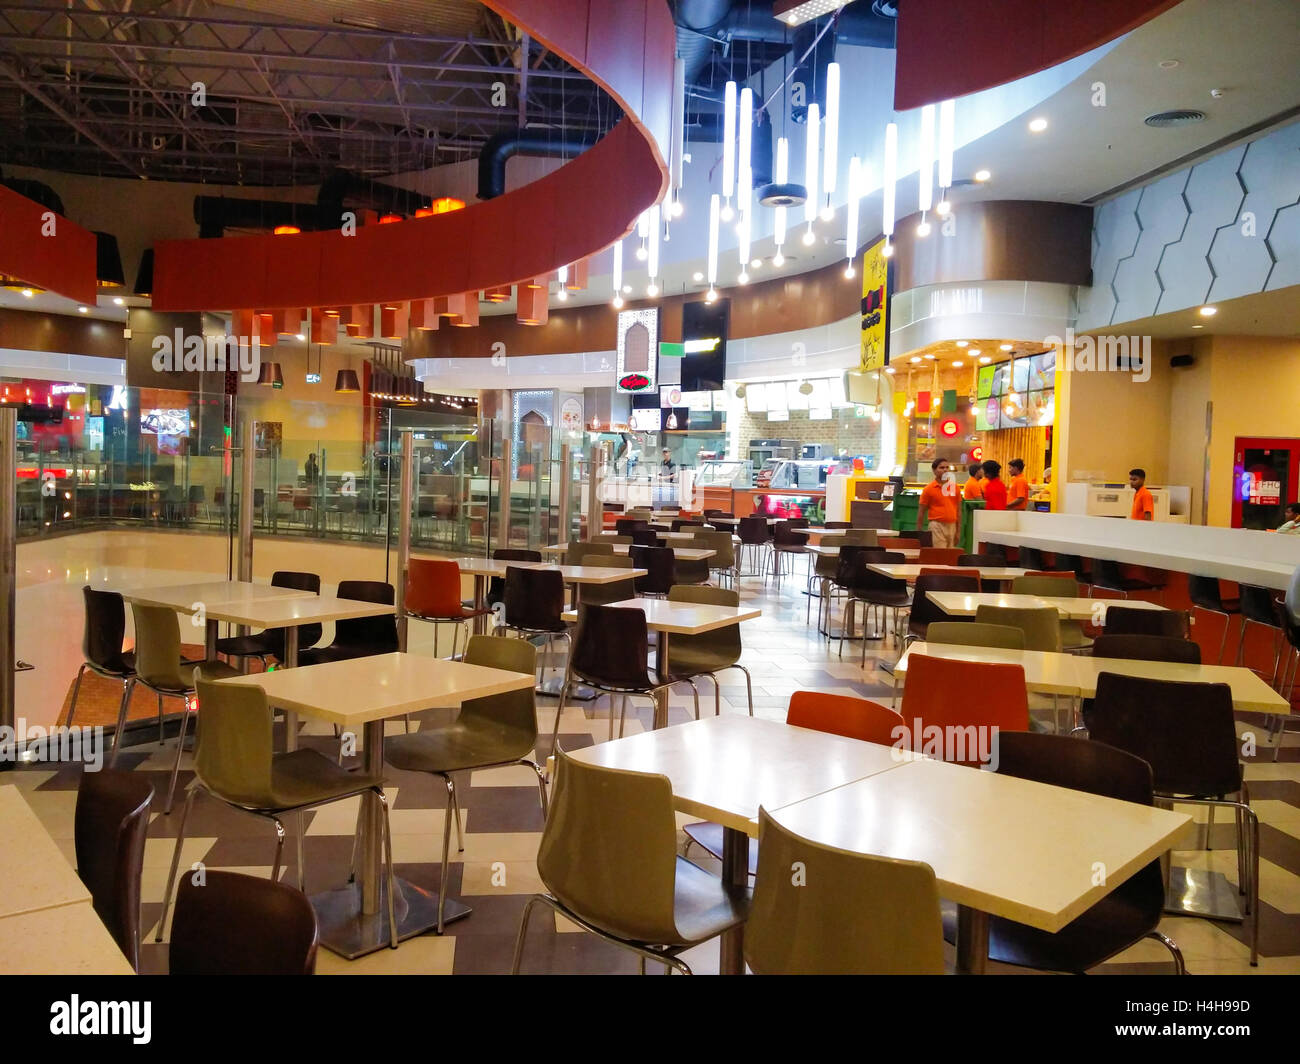 Noida, India - 12oct 2016 : Food court at the Mall of India